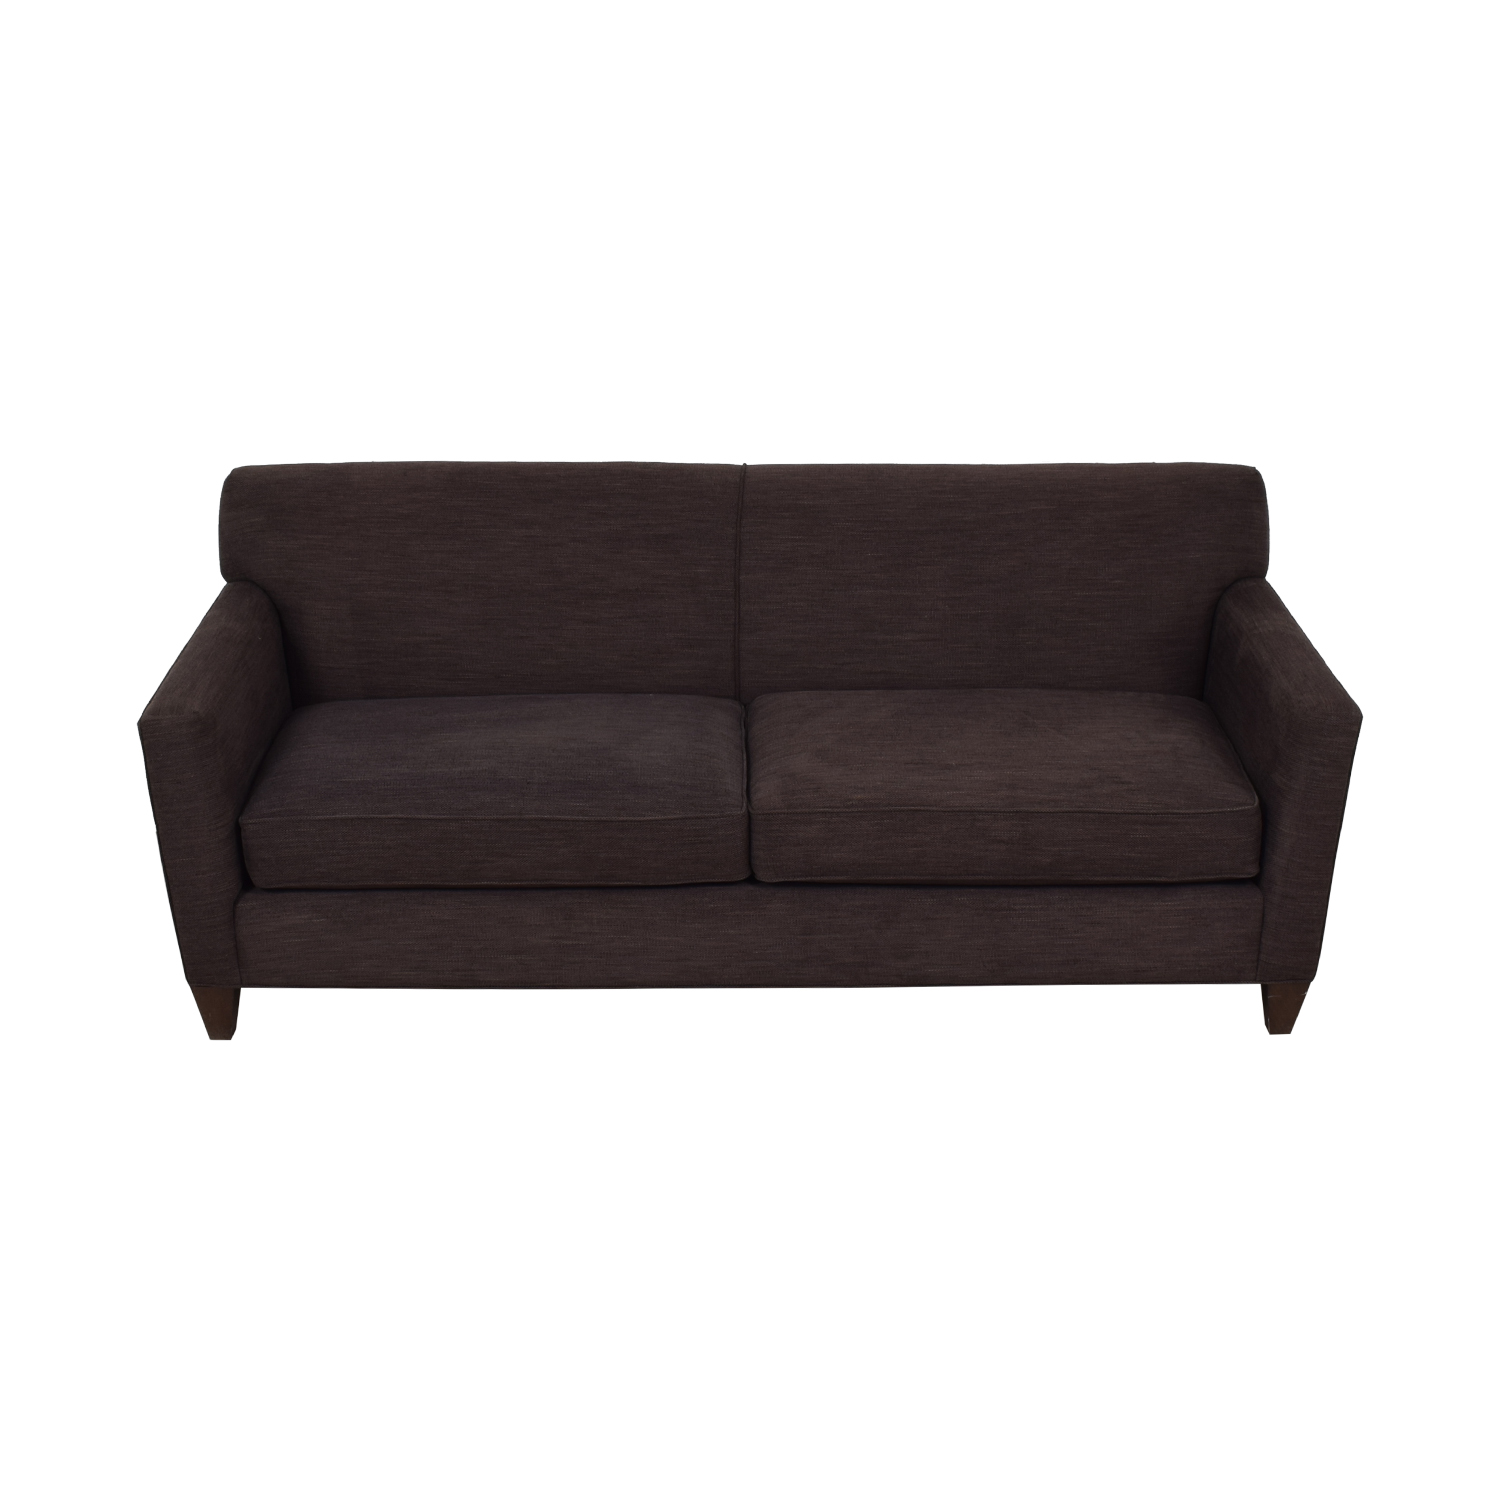 buy Crate & Barrel Hennessy Brown Two-Cushion Sofa Crate & Barrel Classic Sofas